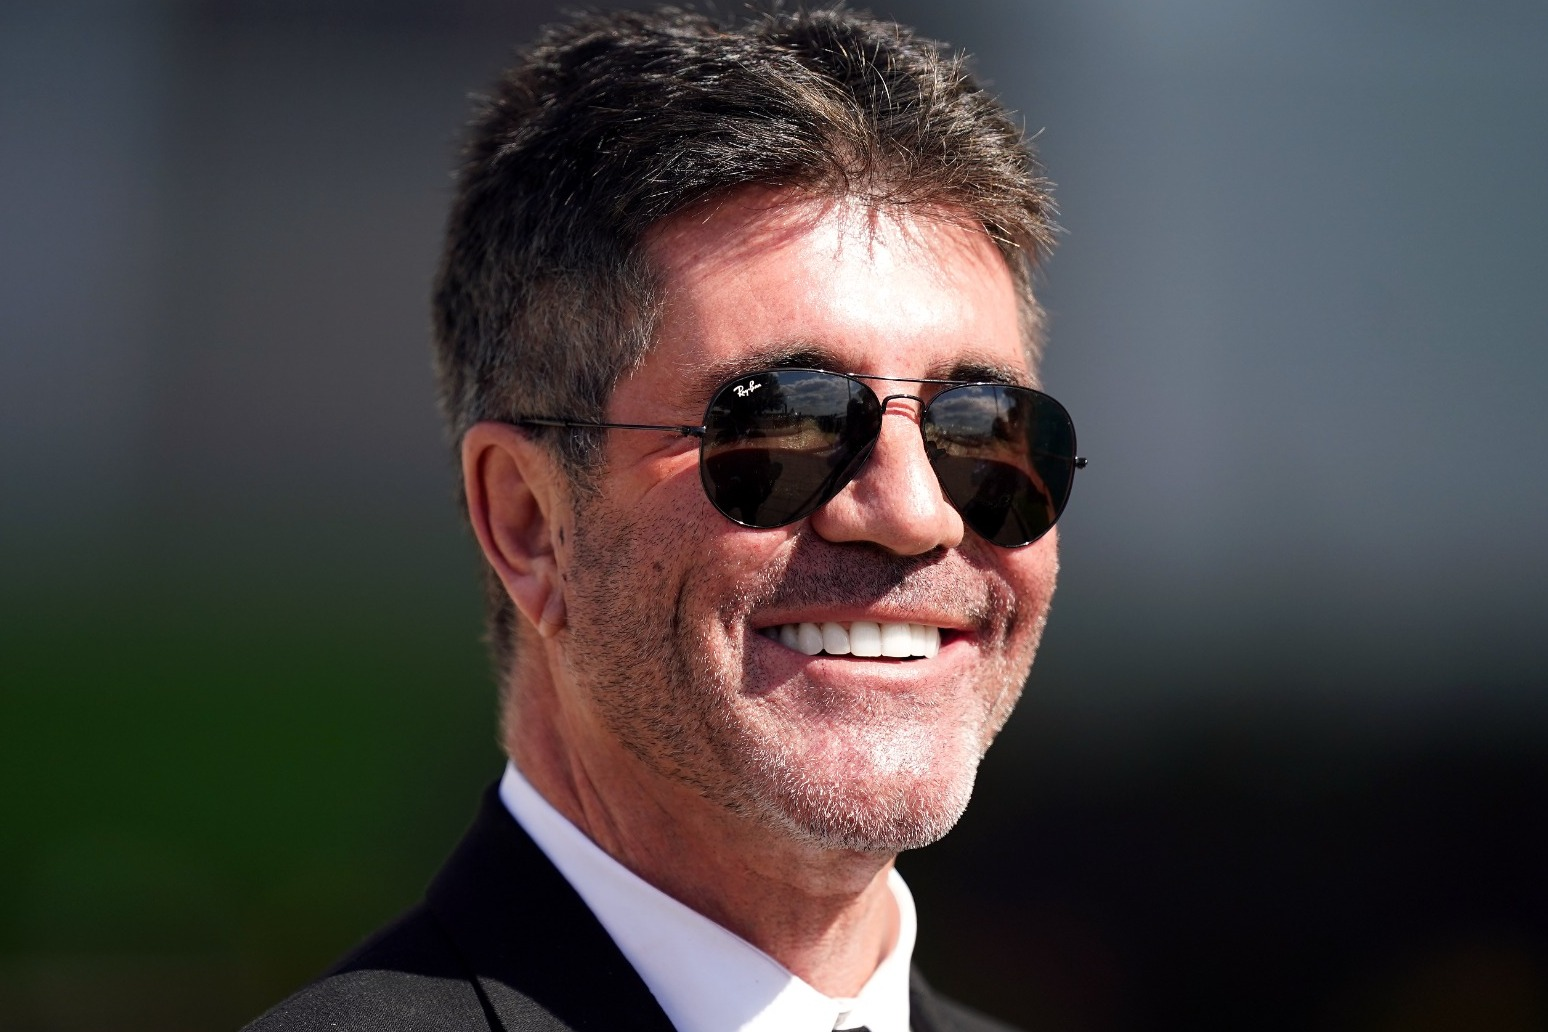 Simon Cowell to return to UK screens with new musical gameshow for ITV